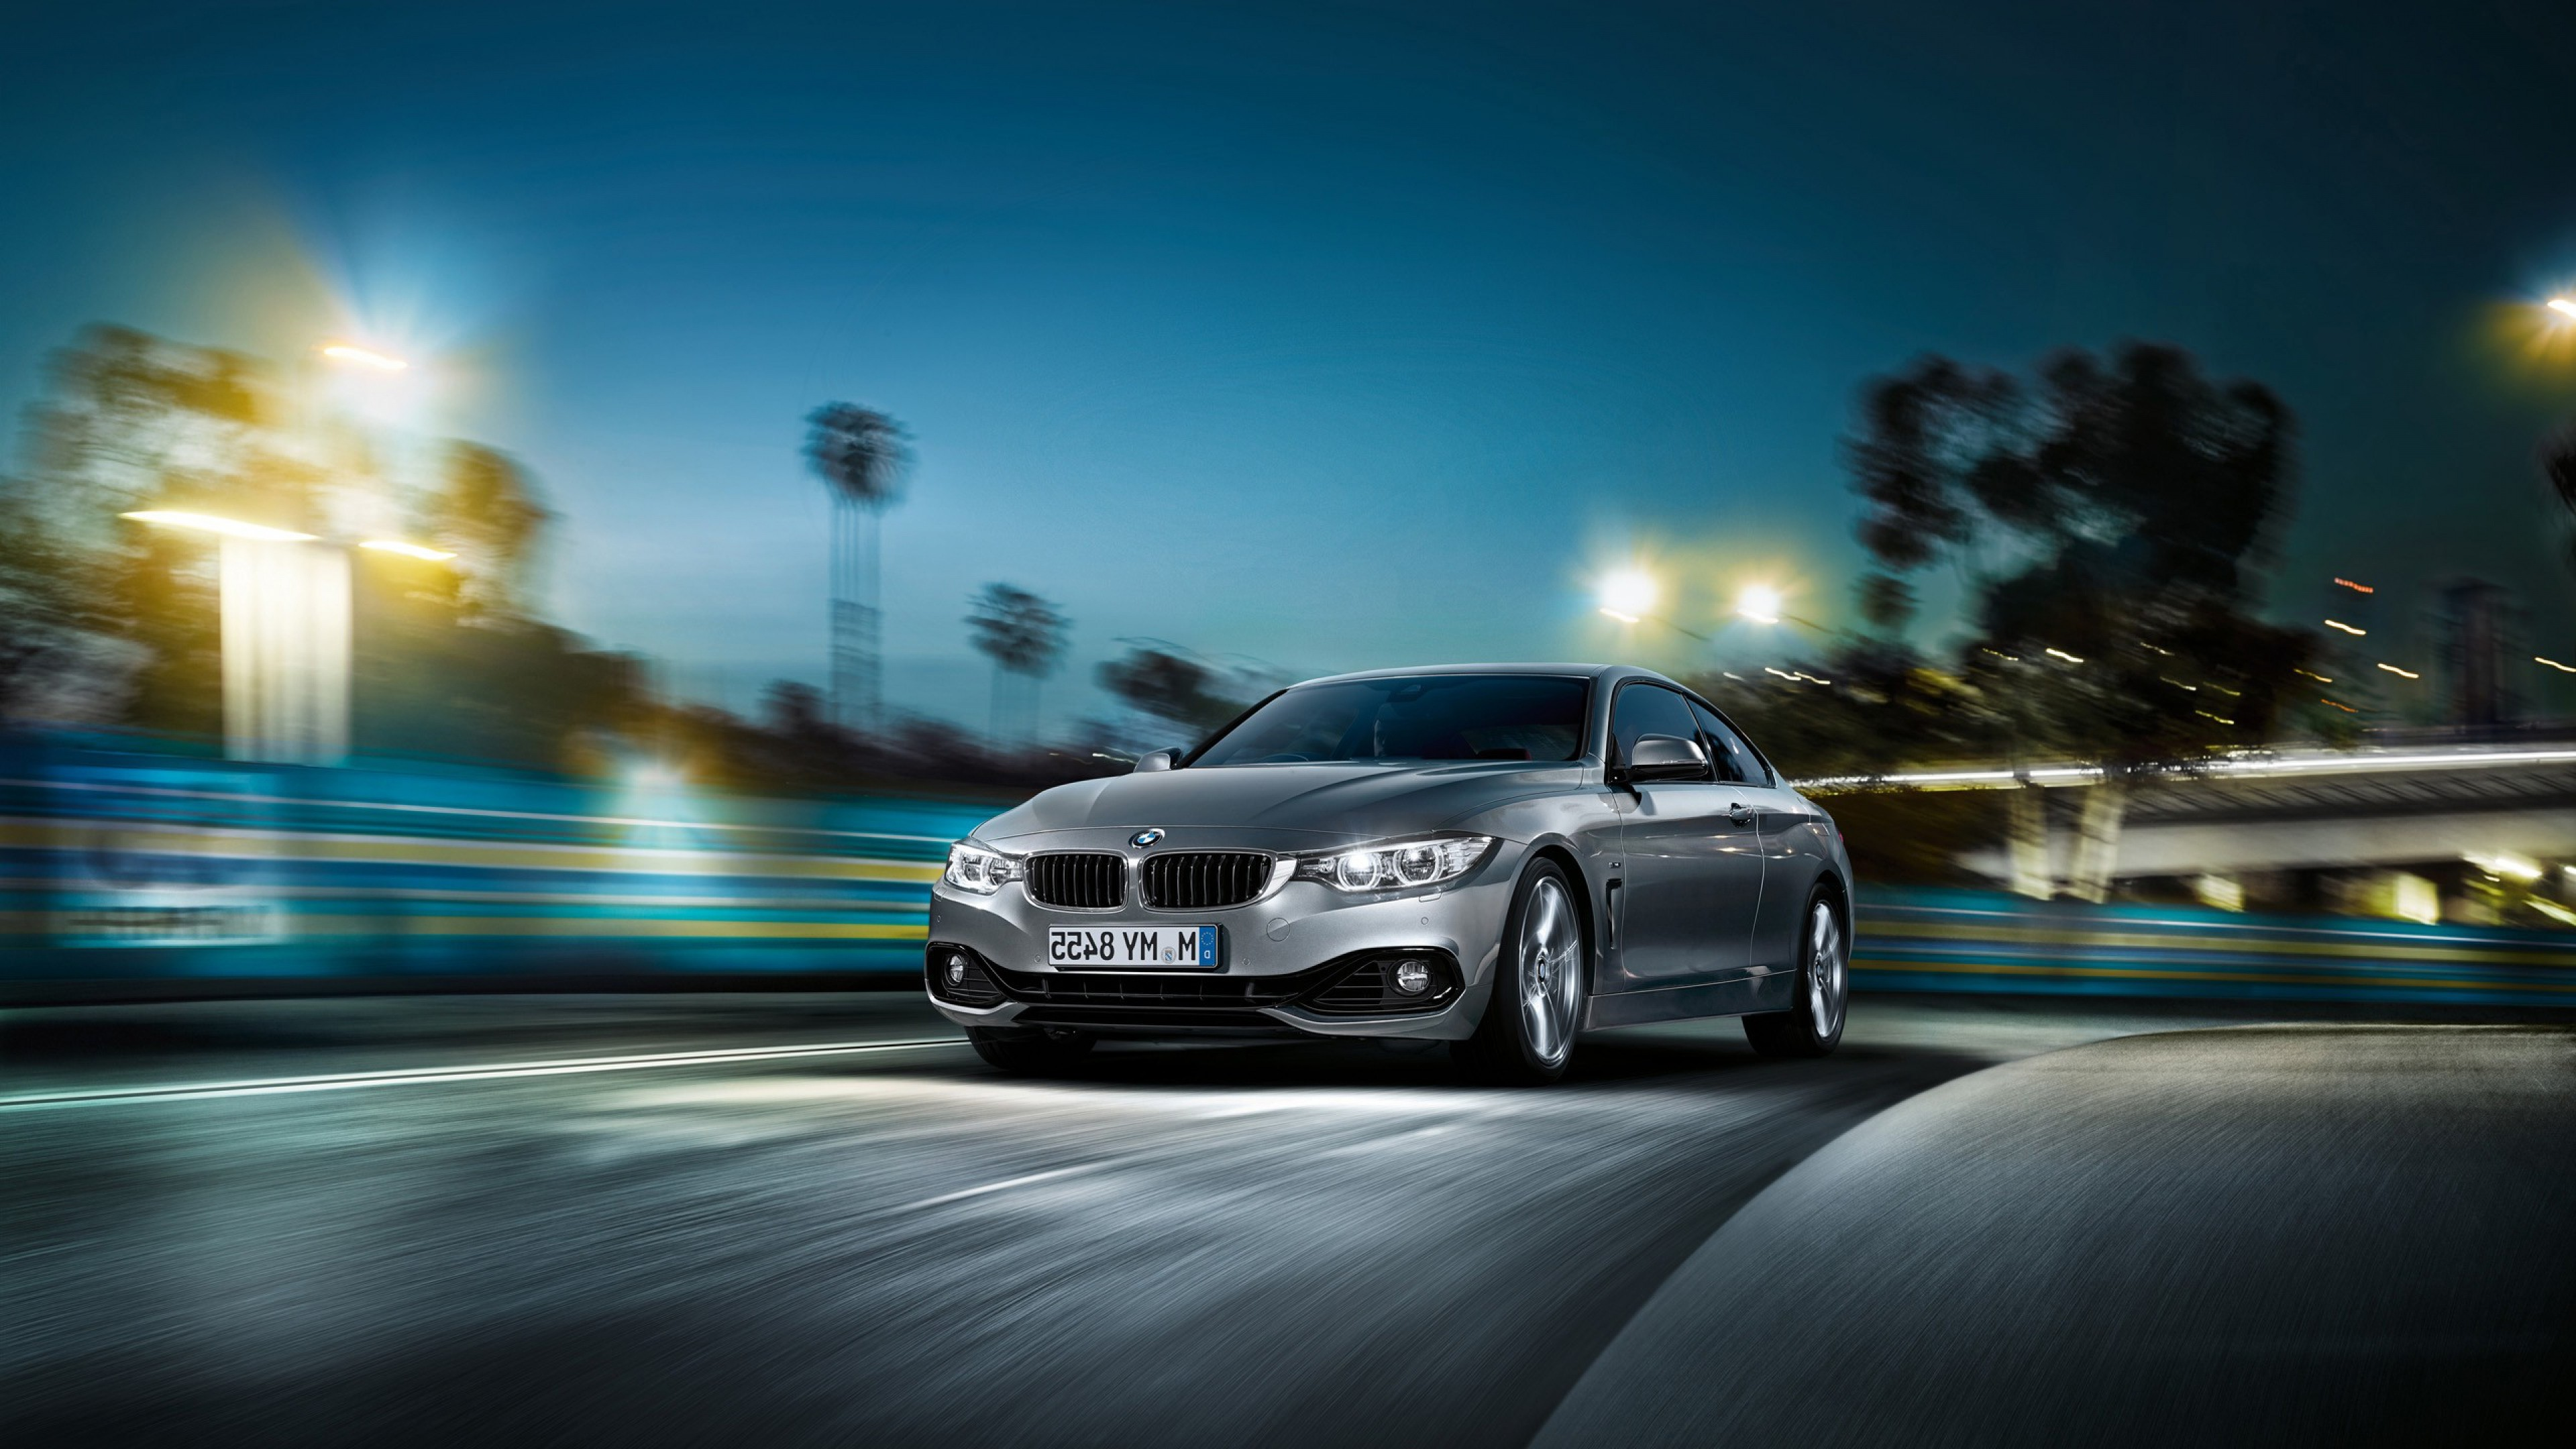 3d Computer Graphics Wallpaper Bmw 4 Series Coupe Hd Cars 4k Wallpapers Images